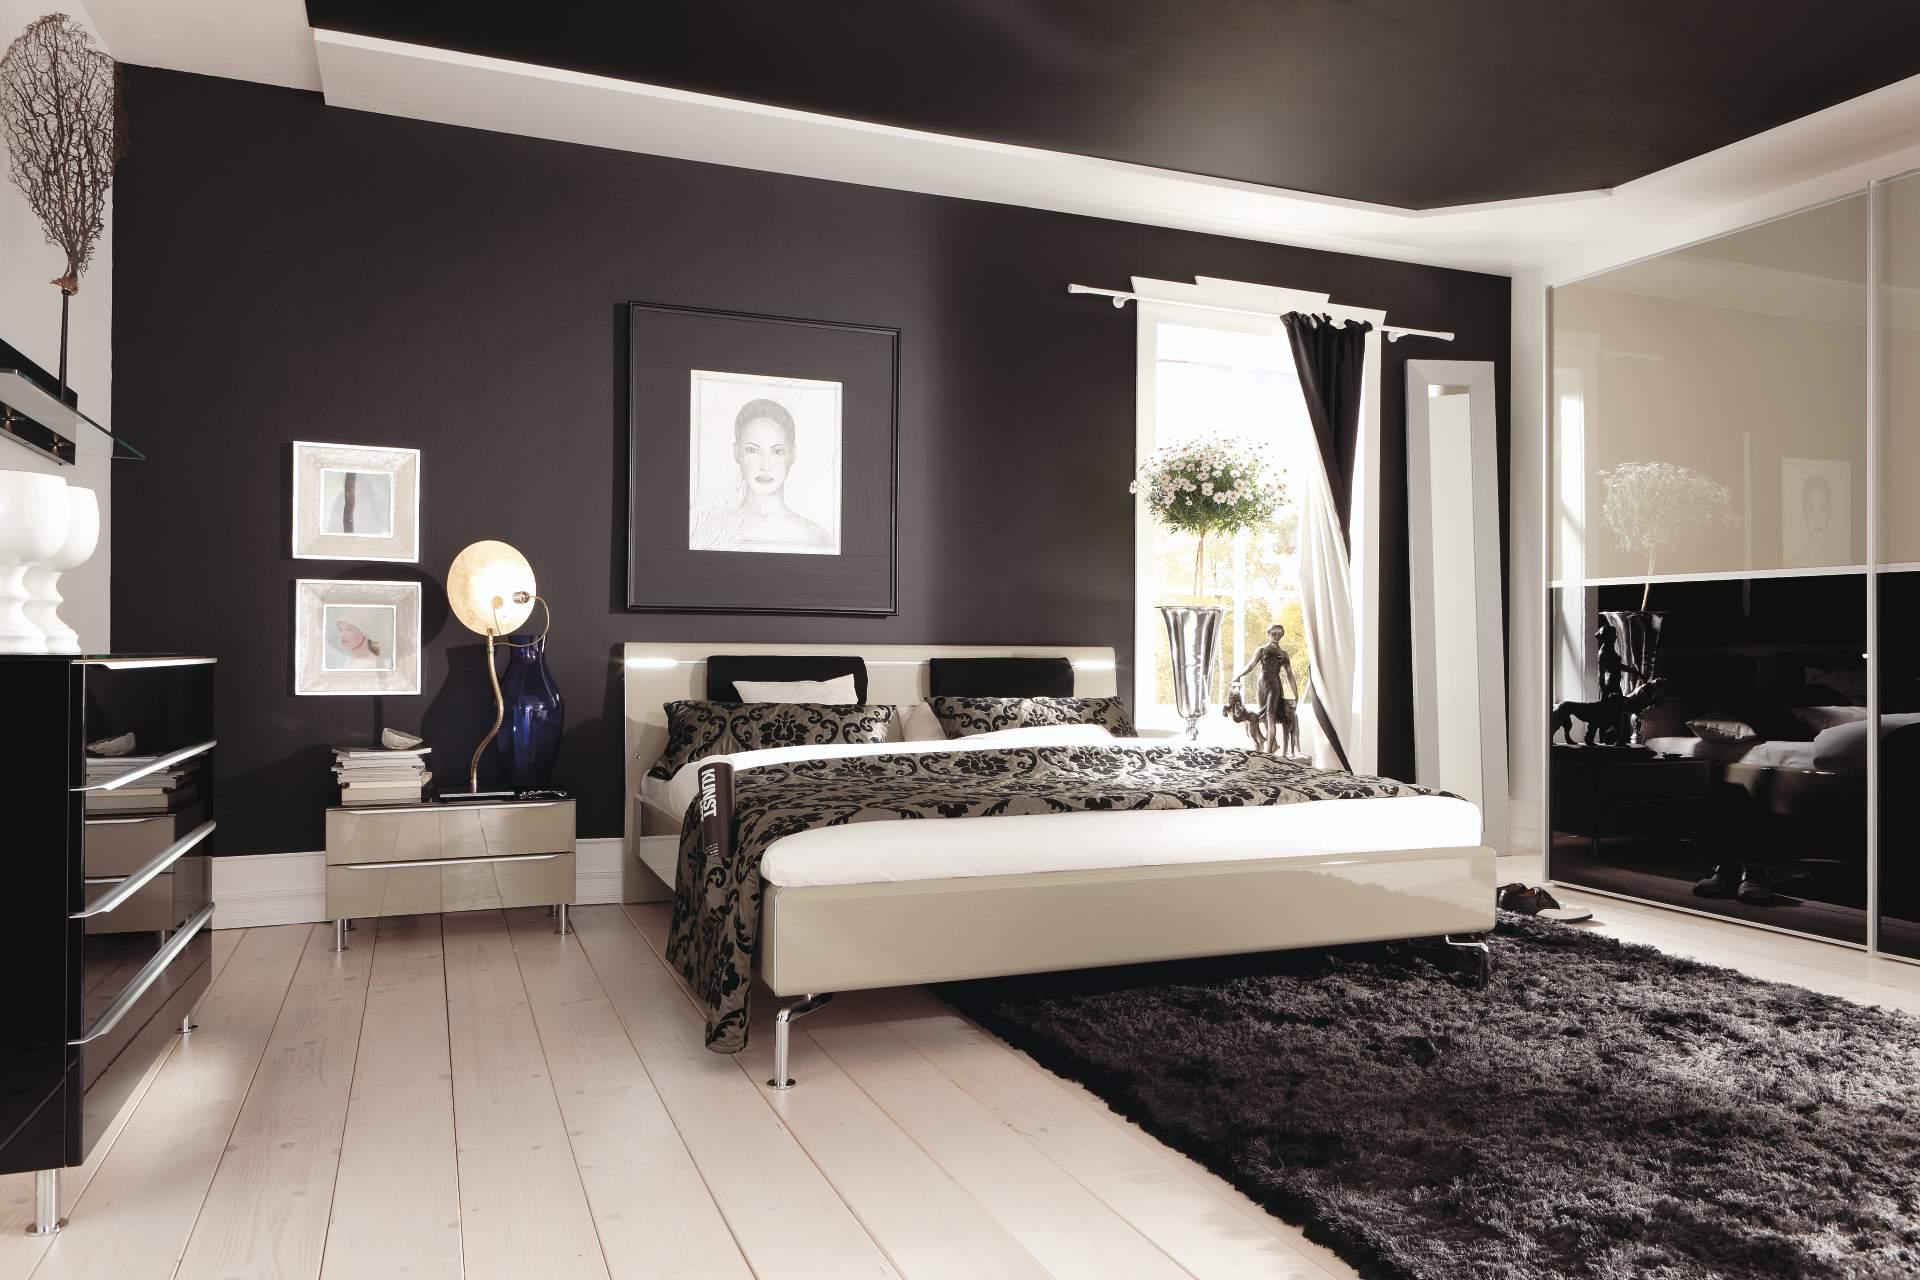 Dazzling Bedroom Contemporary Nightstands (View 1 of 10)